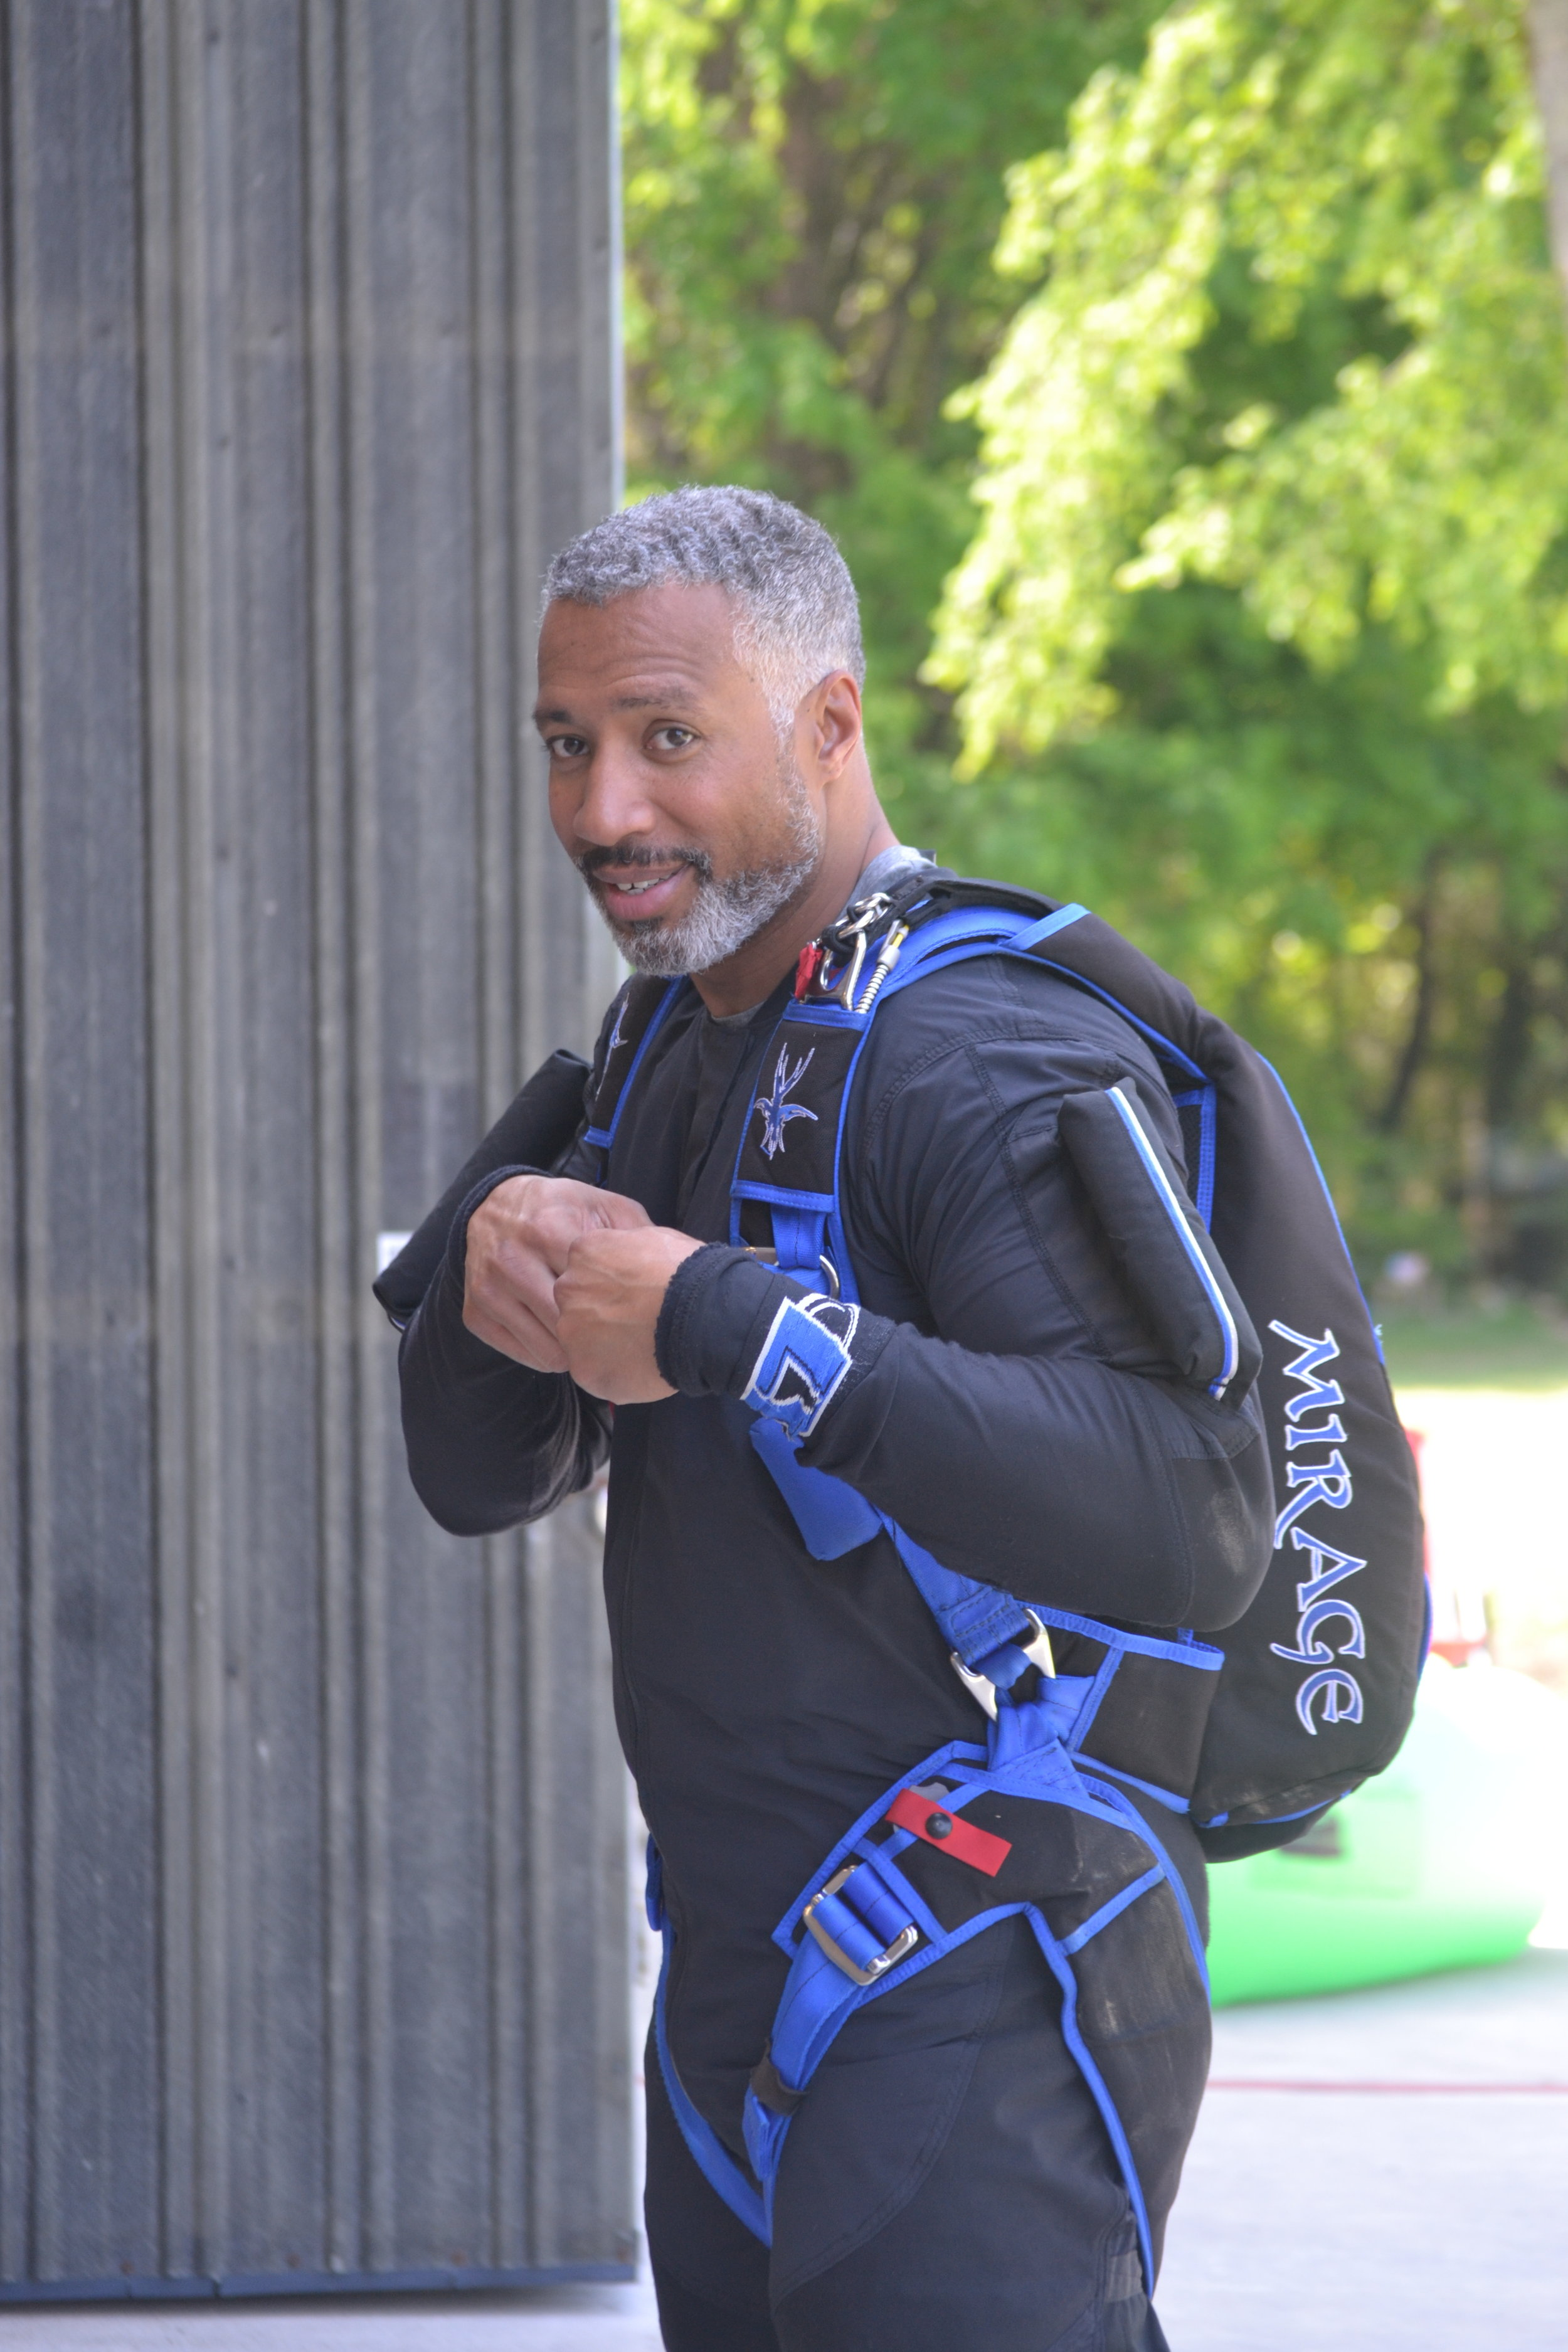 Sean Sylvester is a skydiving instructor at a drop-zone in Florida. He enjoys instructing students, traveling to RW camps and skydiving with his wife of 28 years.  Photo credit: Jackie Sylvester